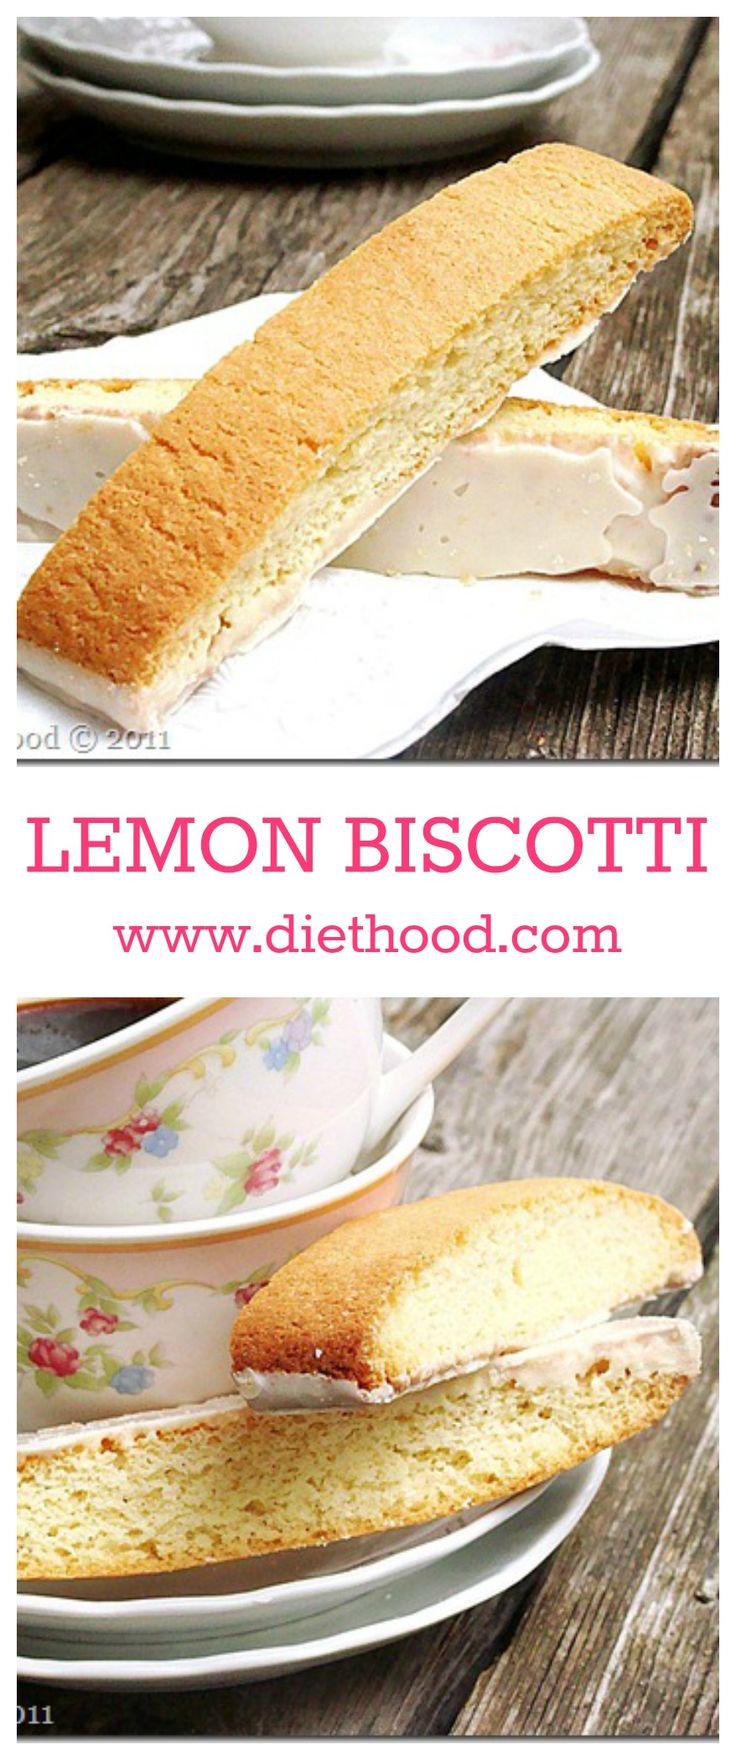 Lemon Biscotti - Lemon-flavored cookies, they are your coffee's best friend!!